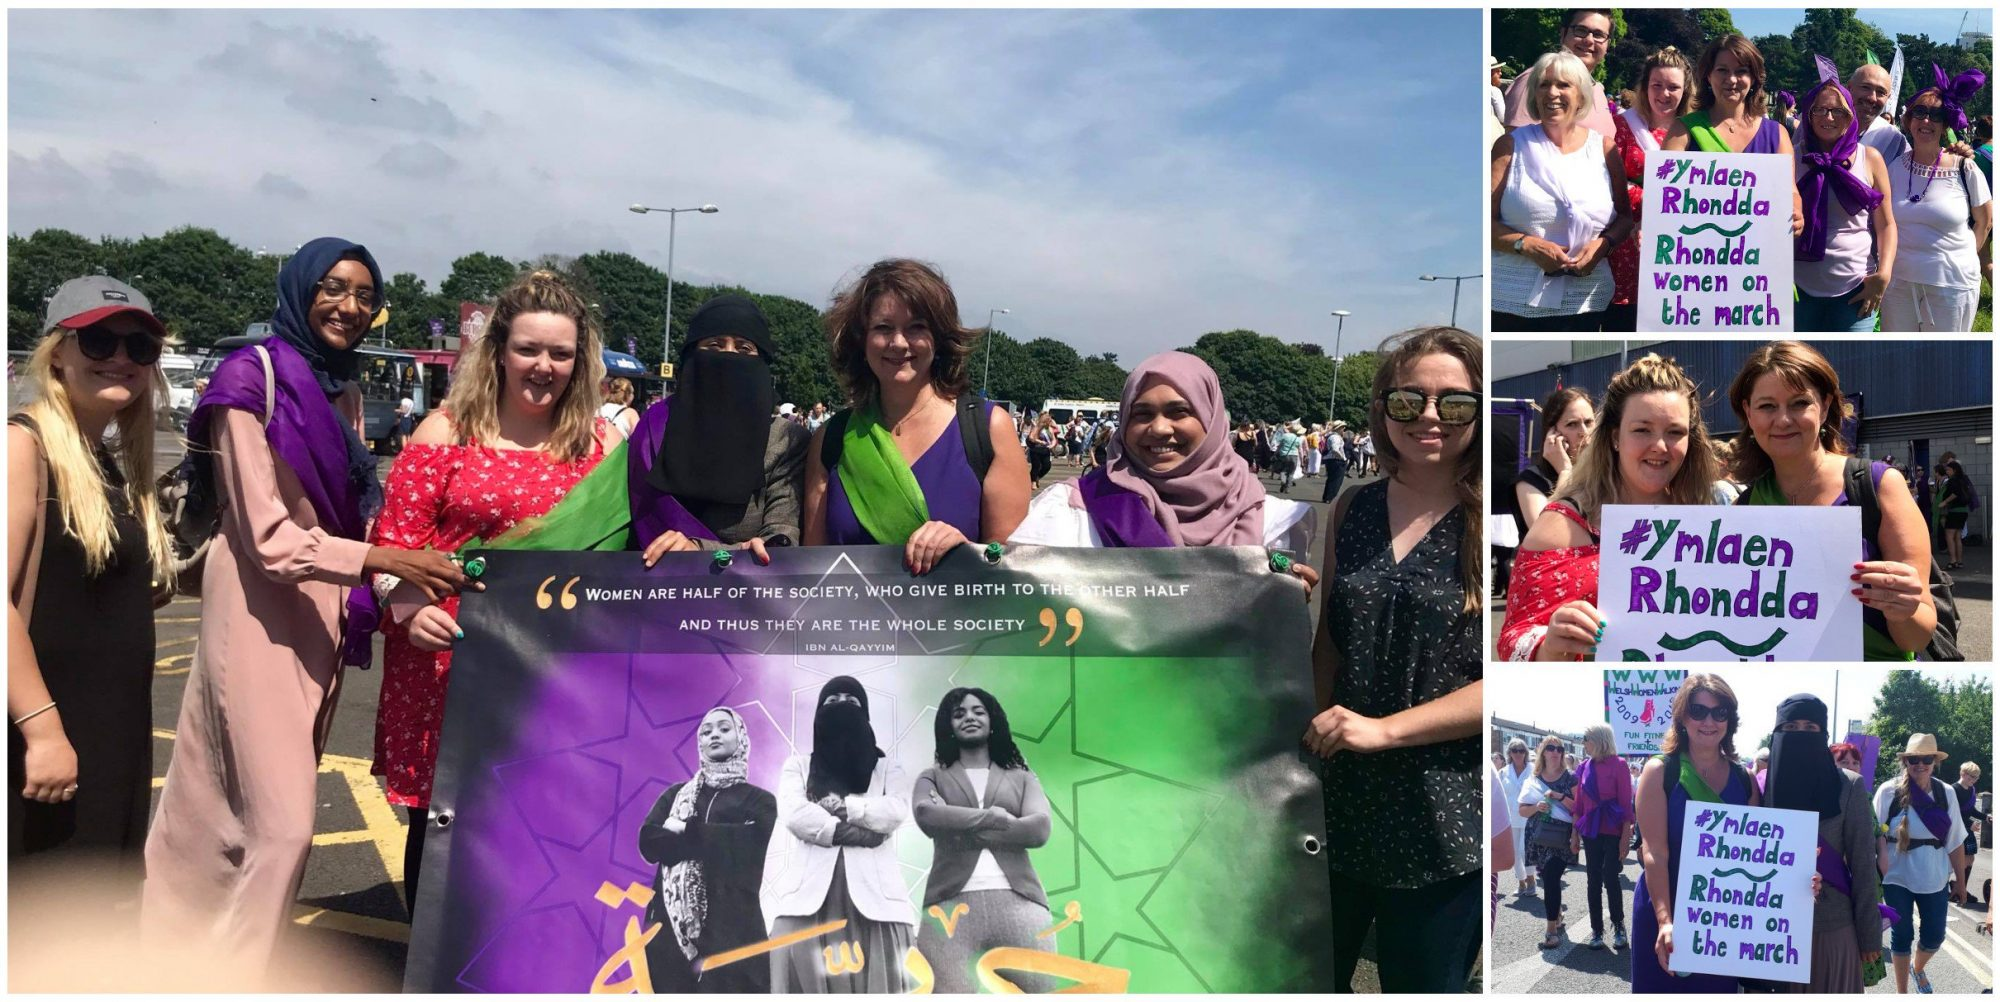 Cardiff for Processions 2018